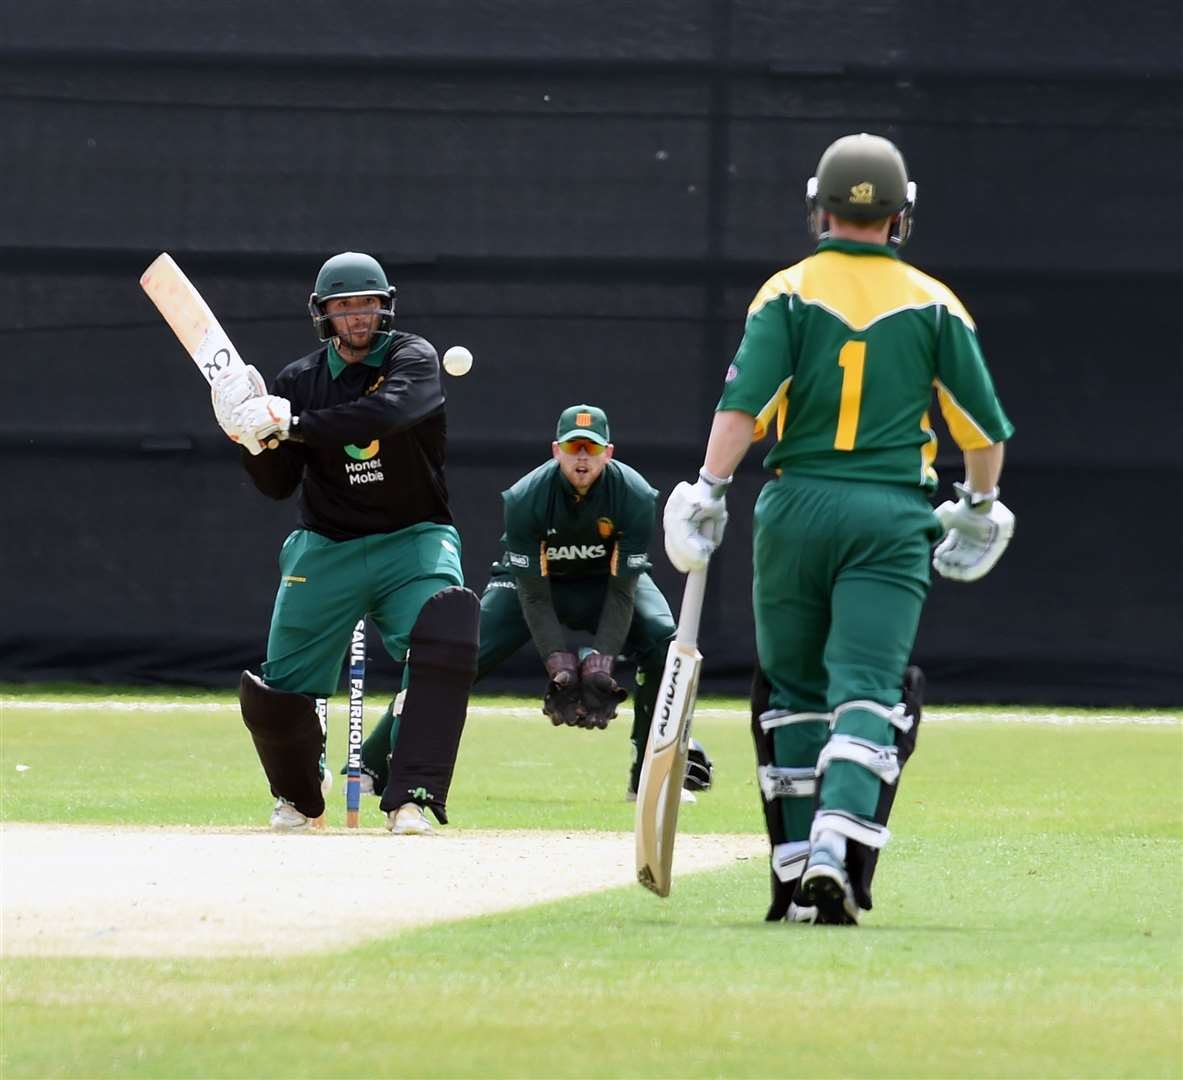 Dan Freeman batting for Lincolnshire. Photo: Toby Roberts (9816470)